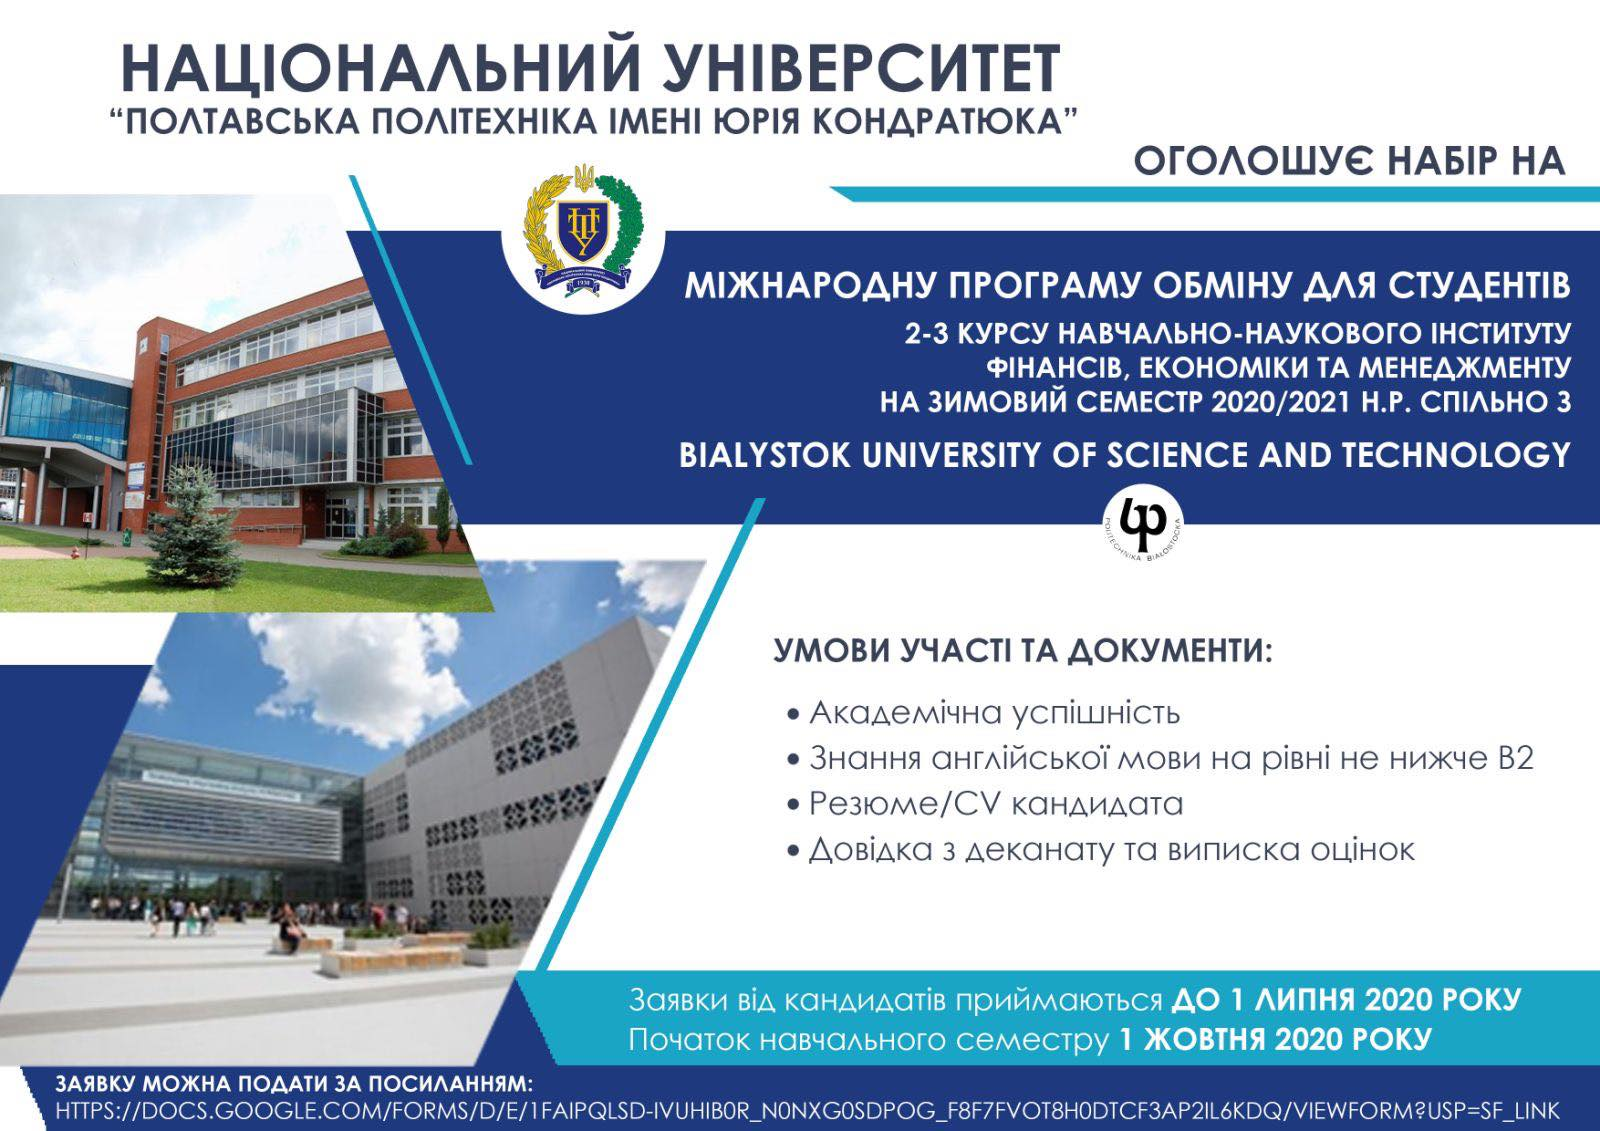 Studying In Poland: Students Invited To Participate In Exchange Program With Bialystok University Of Science And Technology